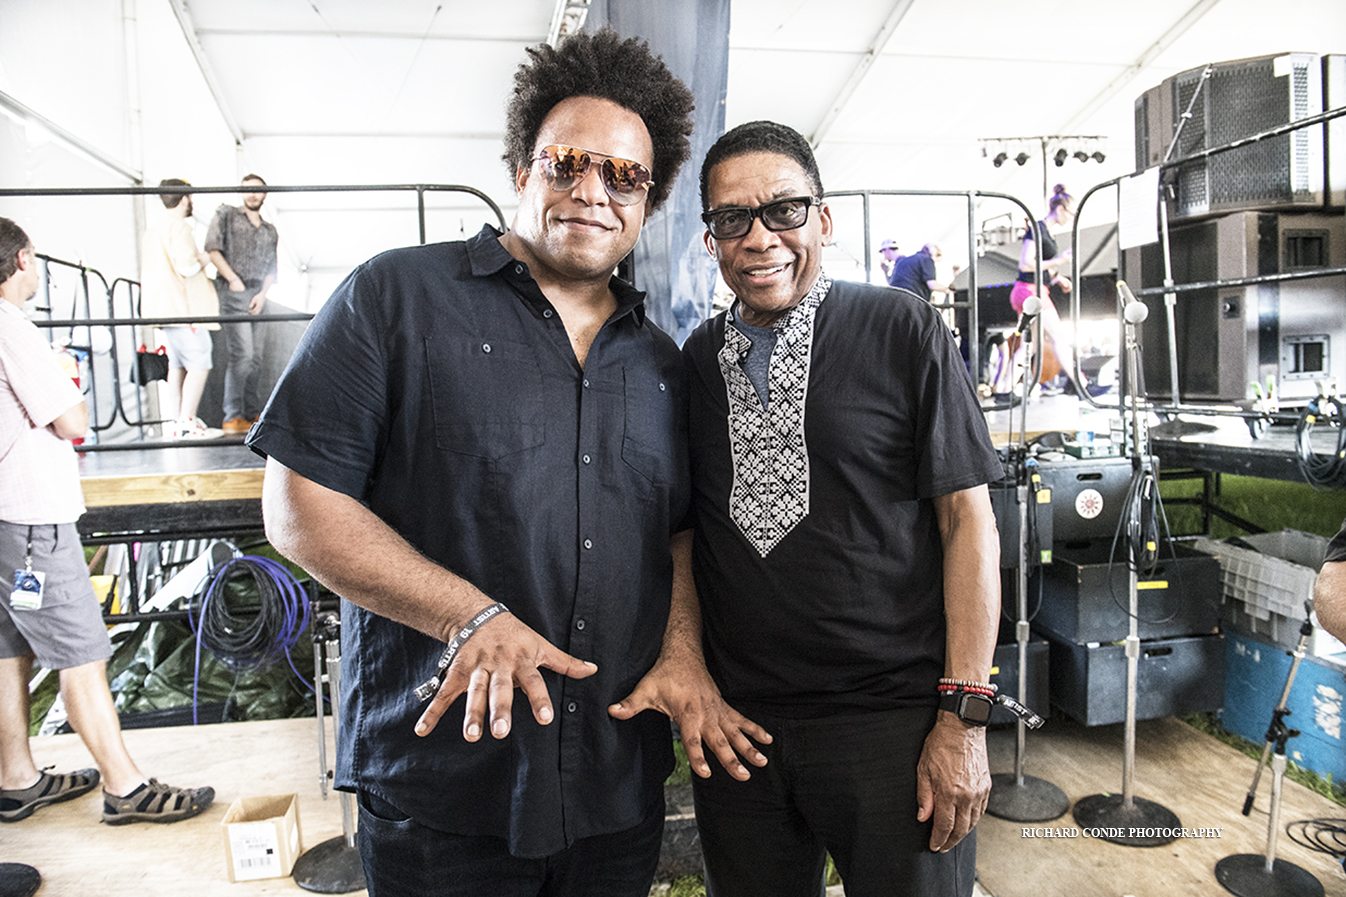 Eric Lewis and Herbie Hancock at the 2019 Newport Jazz Festival